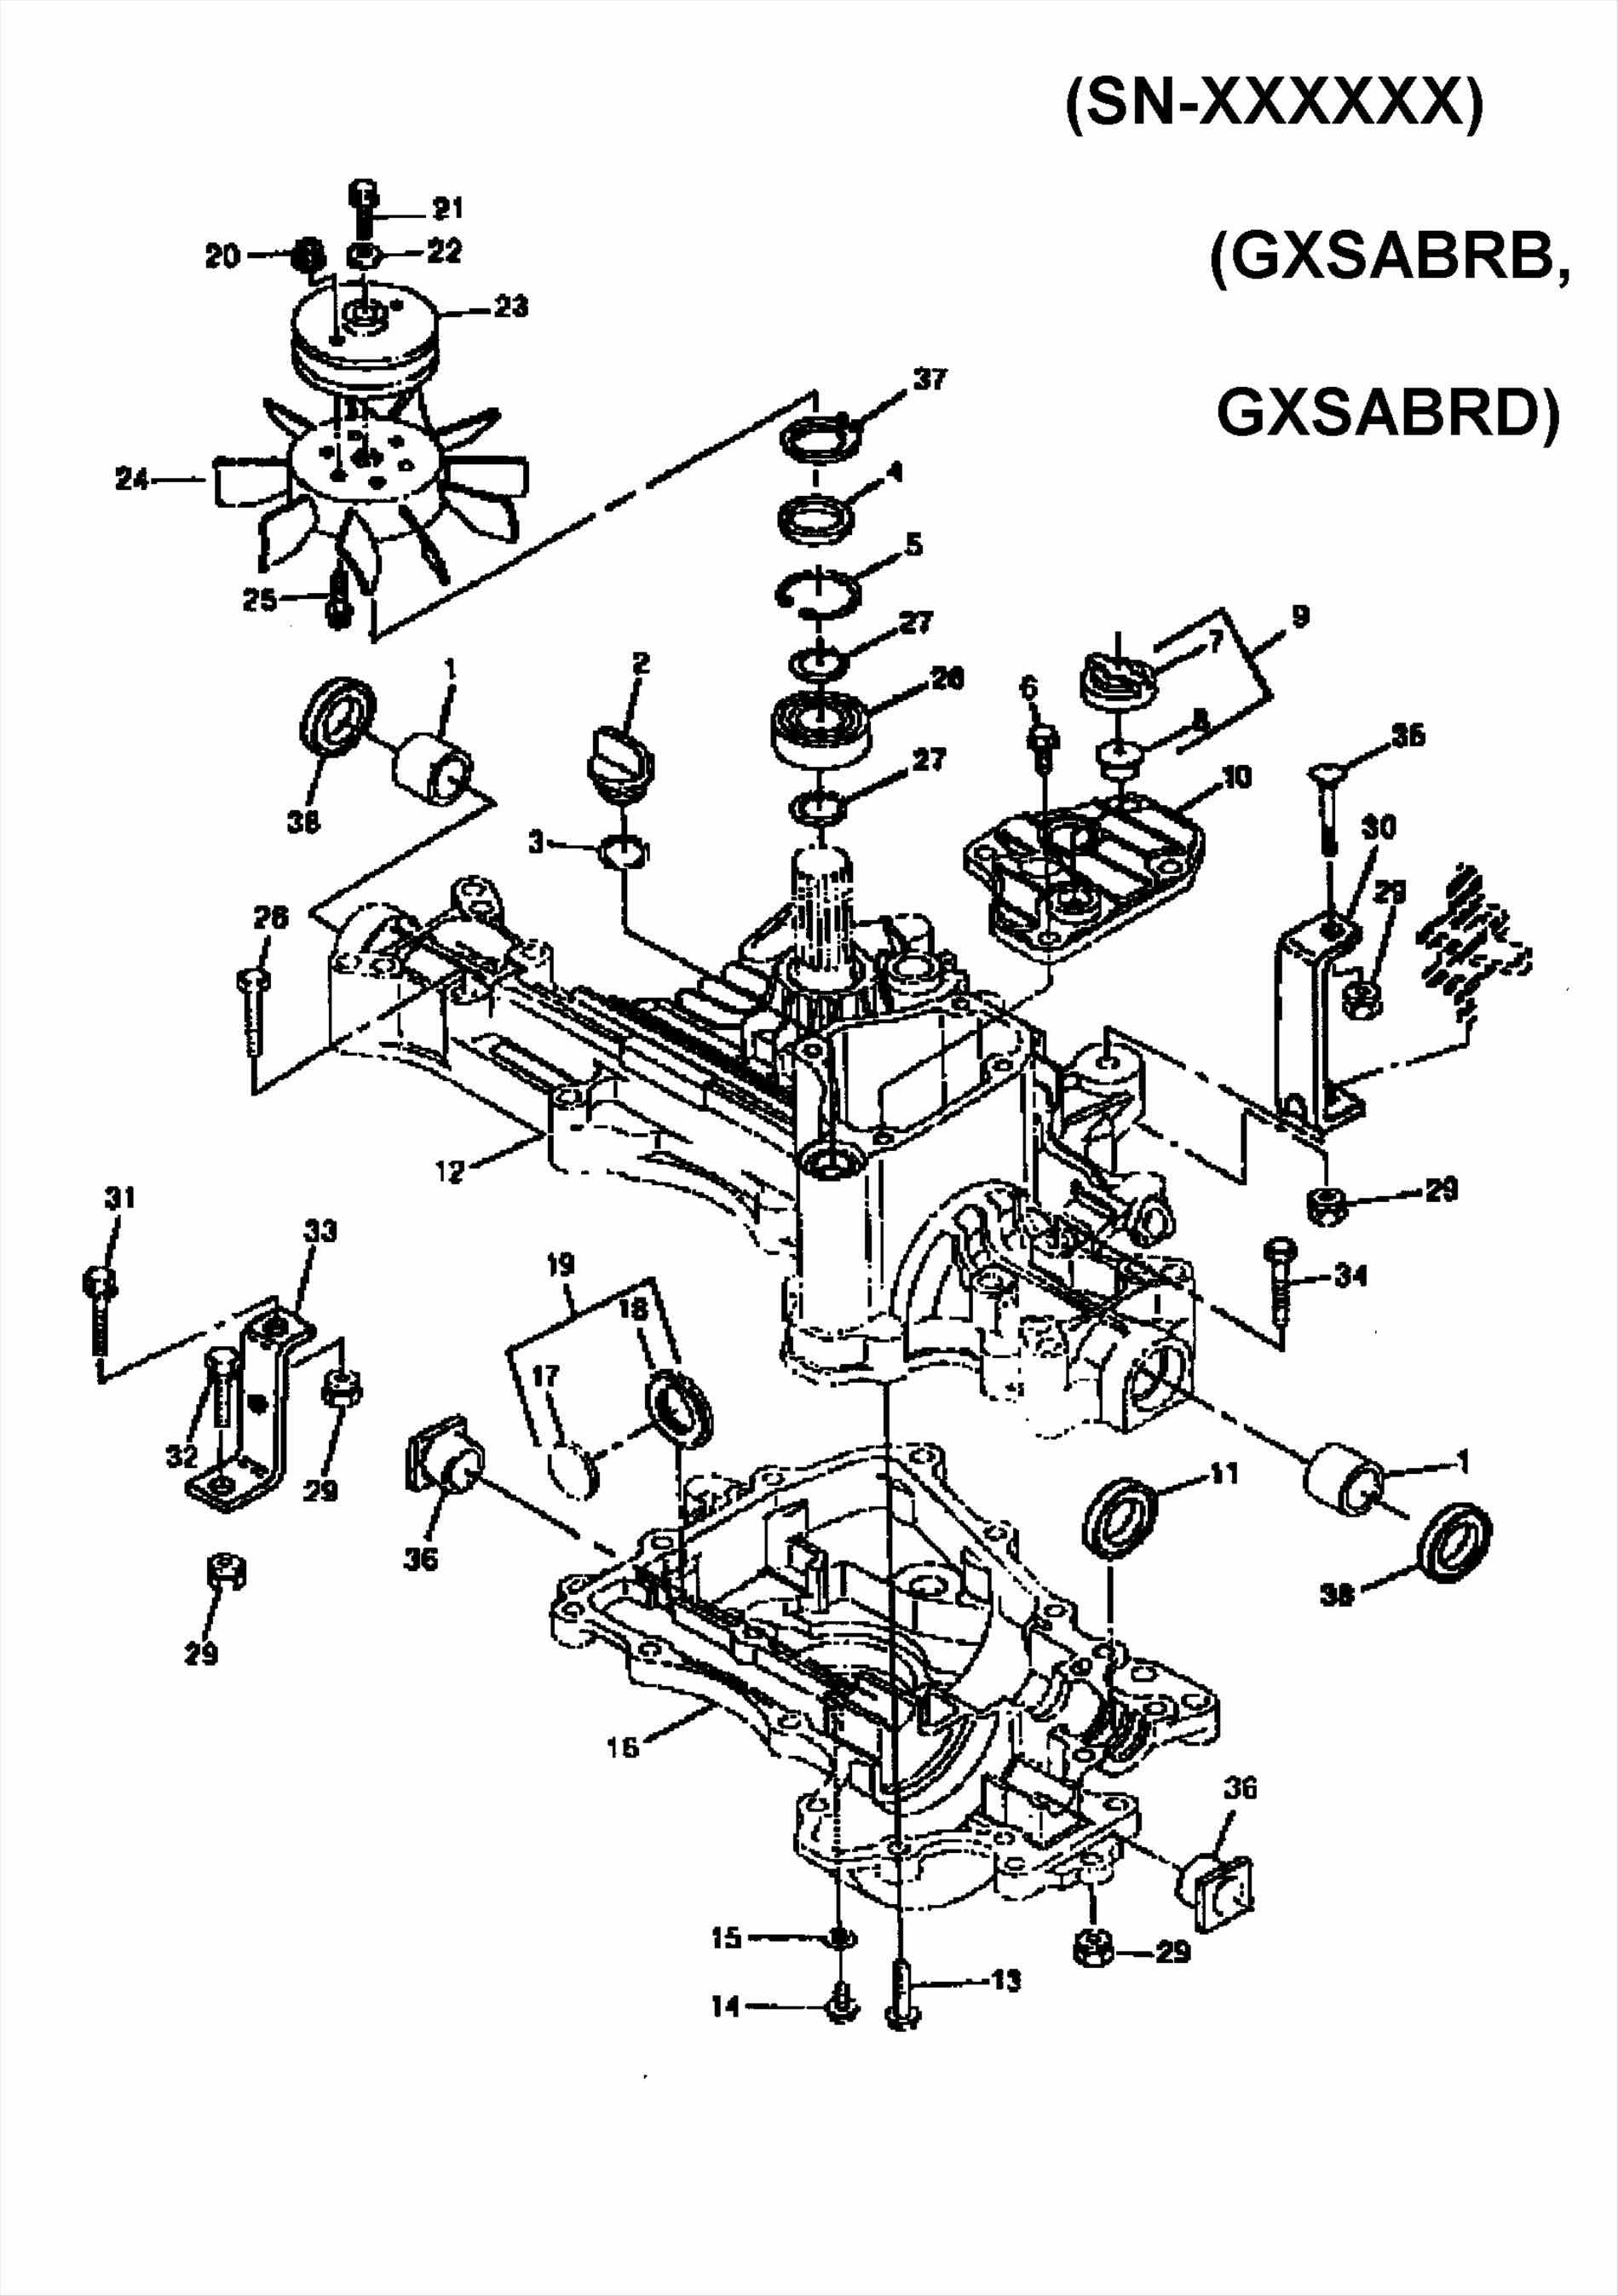 Manual For Craftsman Yt Mower